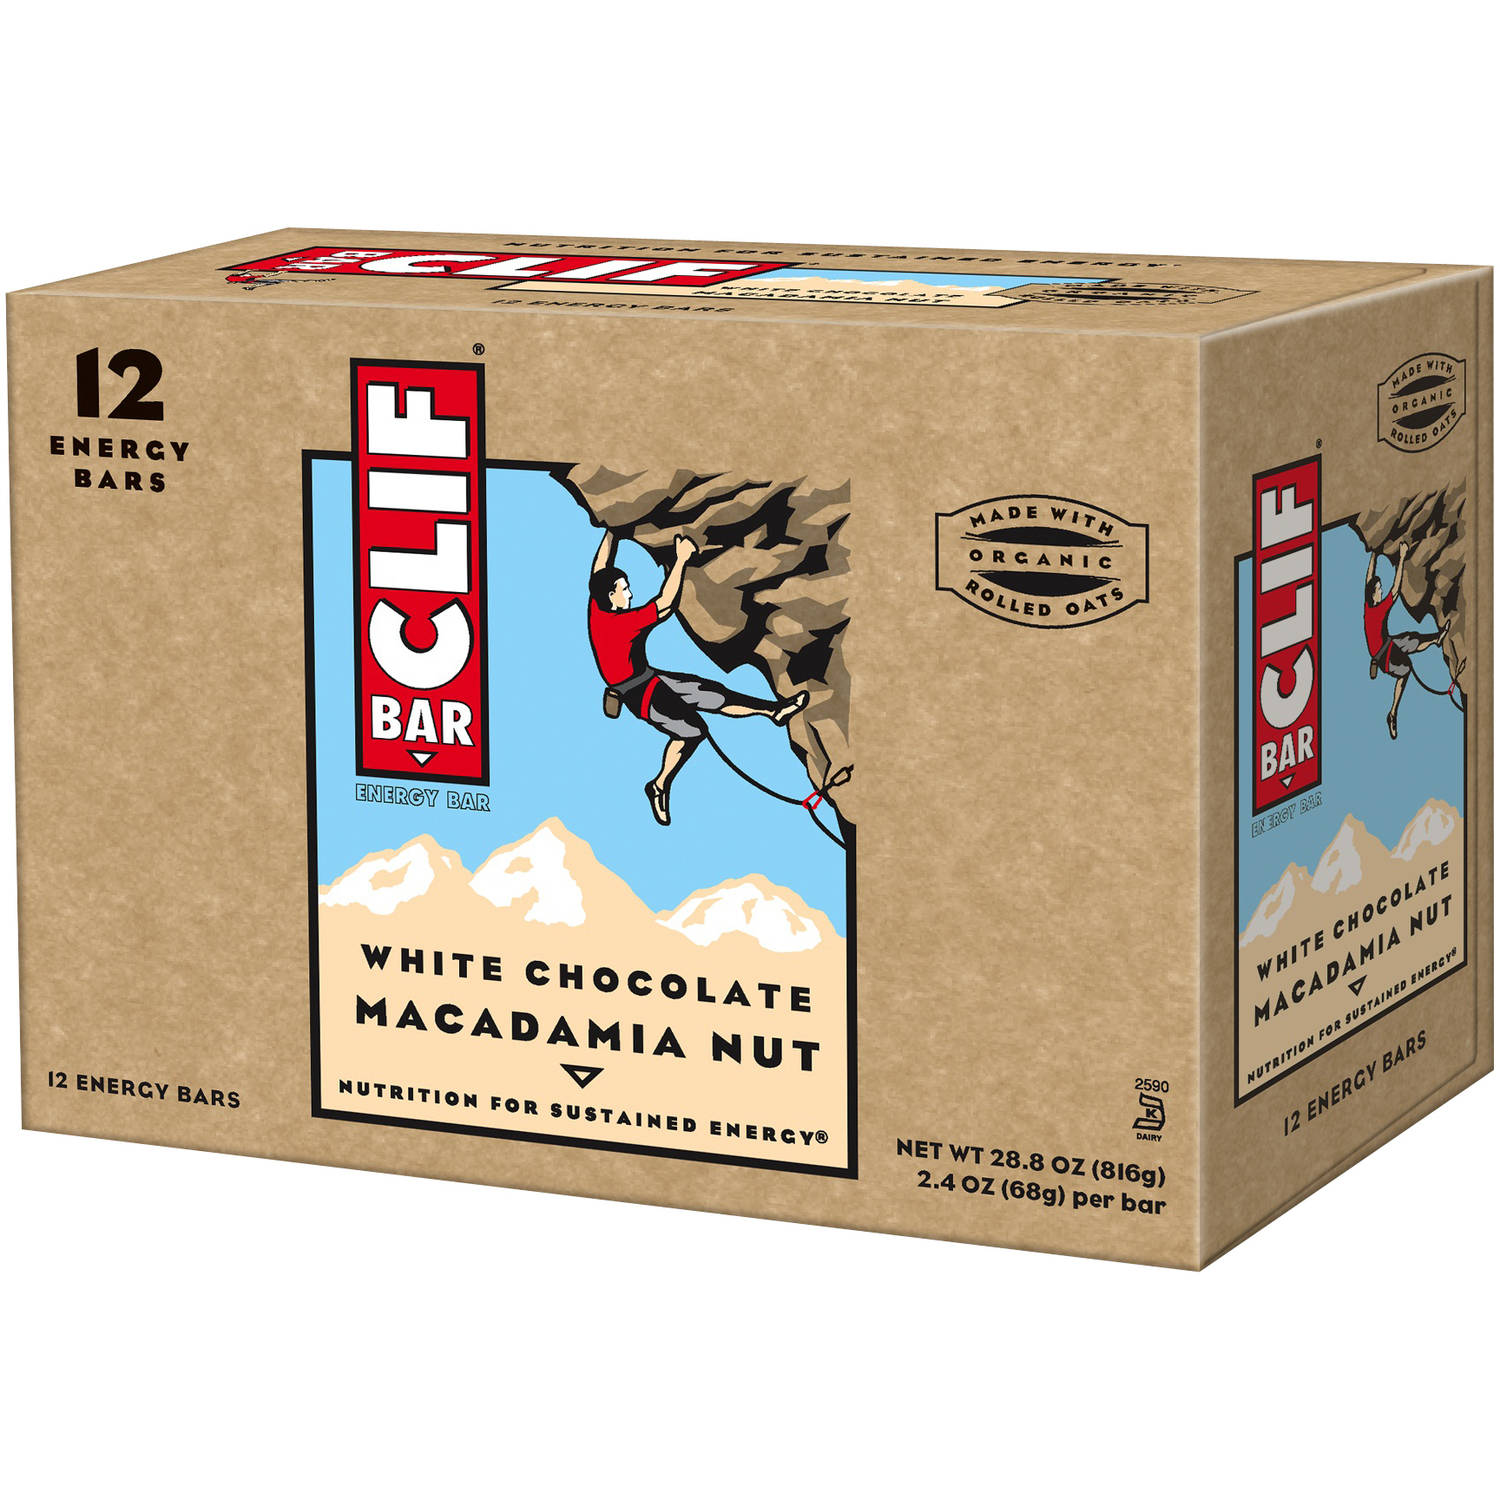 CLIF Bar White Chocolate Macadamia Nut Energy Bars, 2.4 oz, 12 count